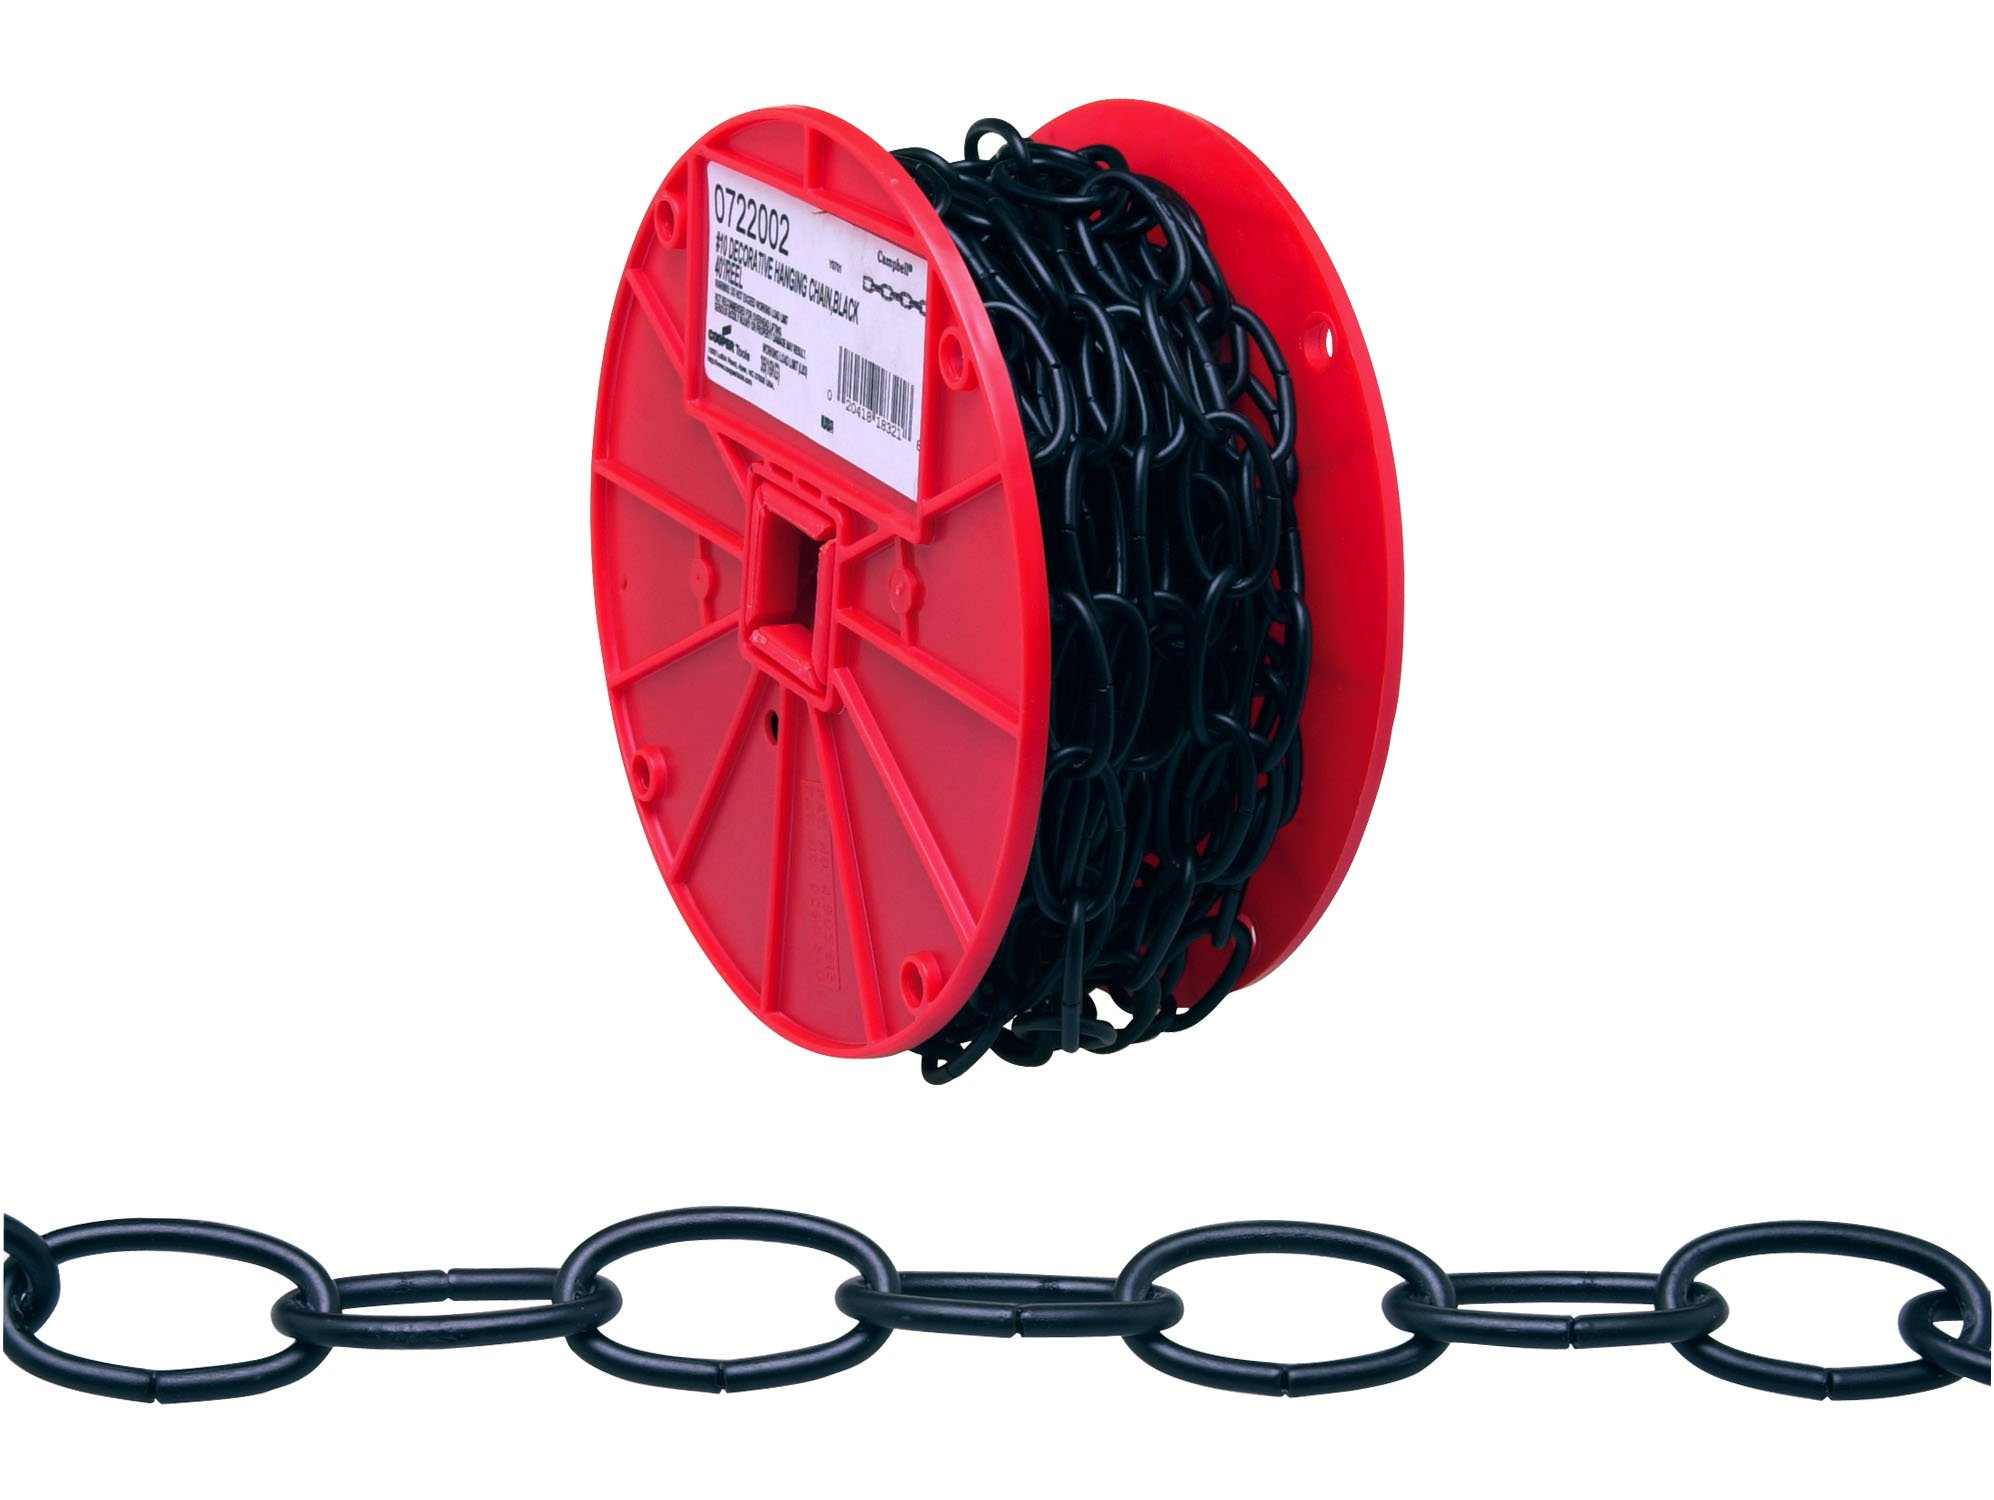 Campbell 0722002 Decorator Chain on Reel, Black